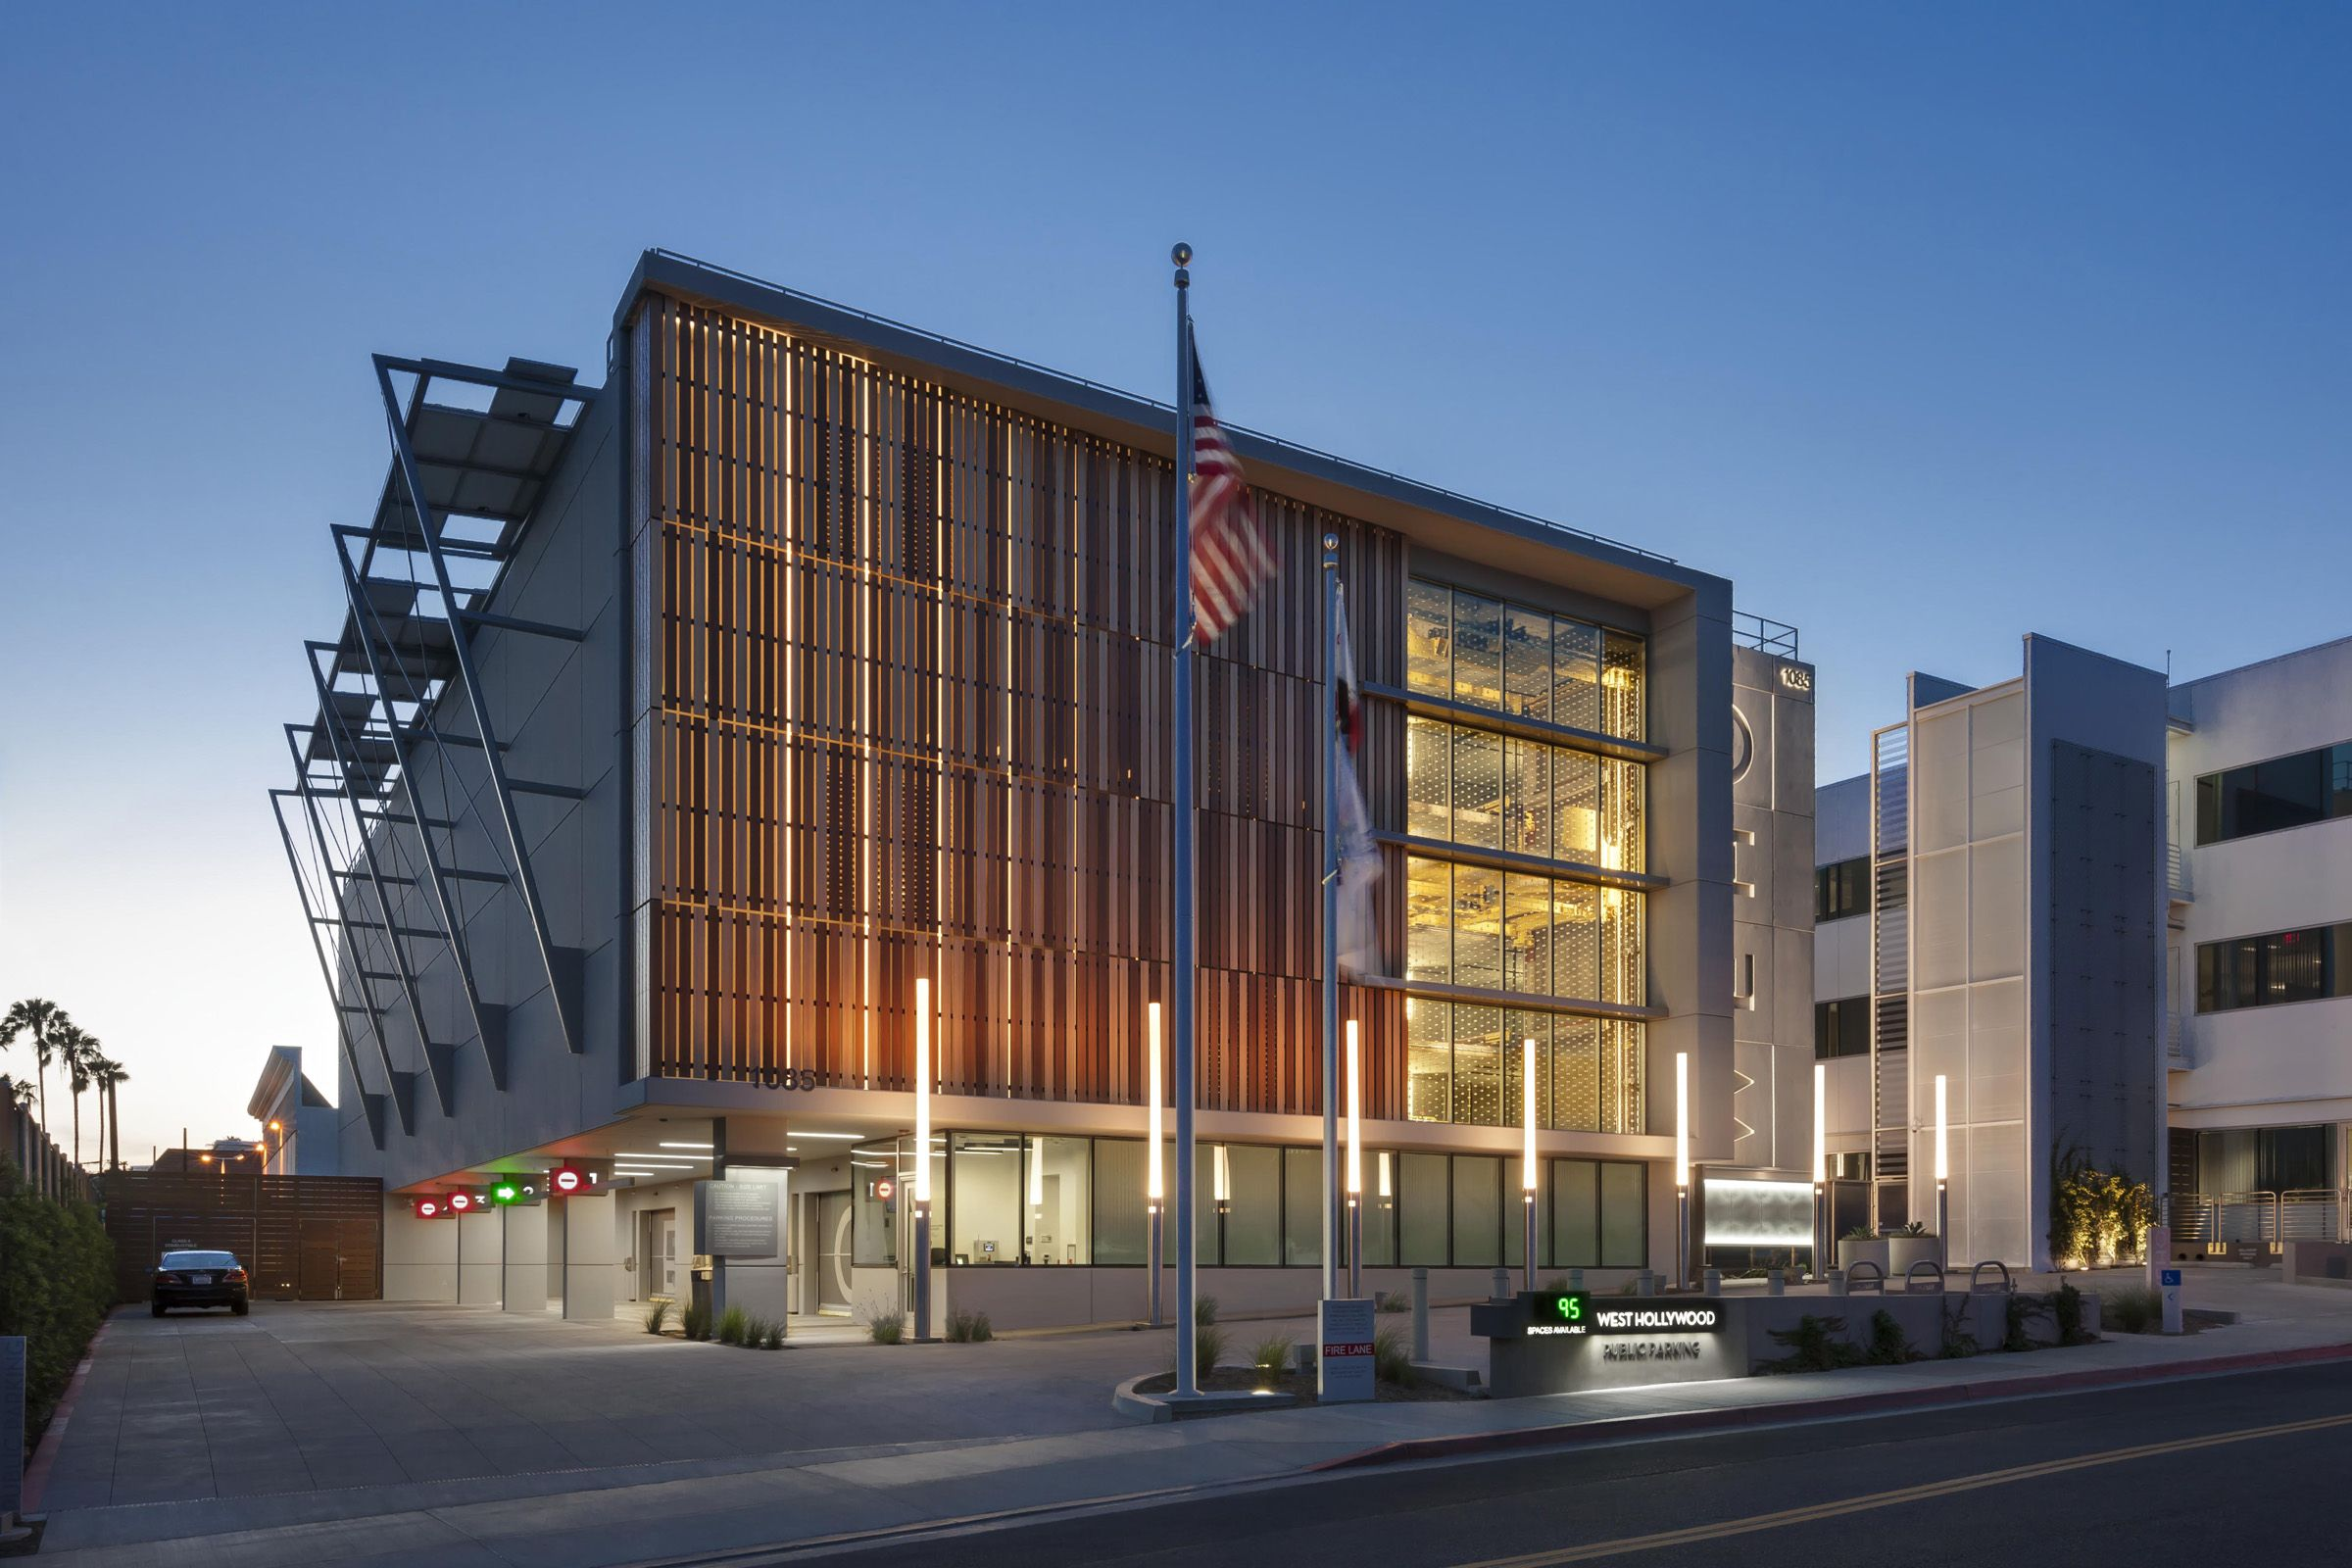 Pin By Tyson Pyle On Parking Structures Building Design